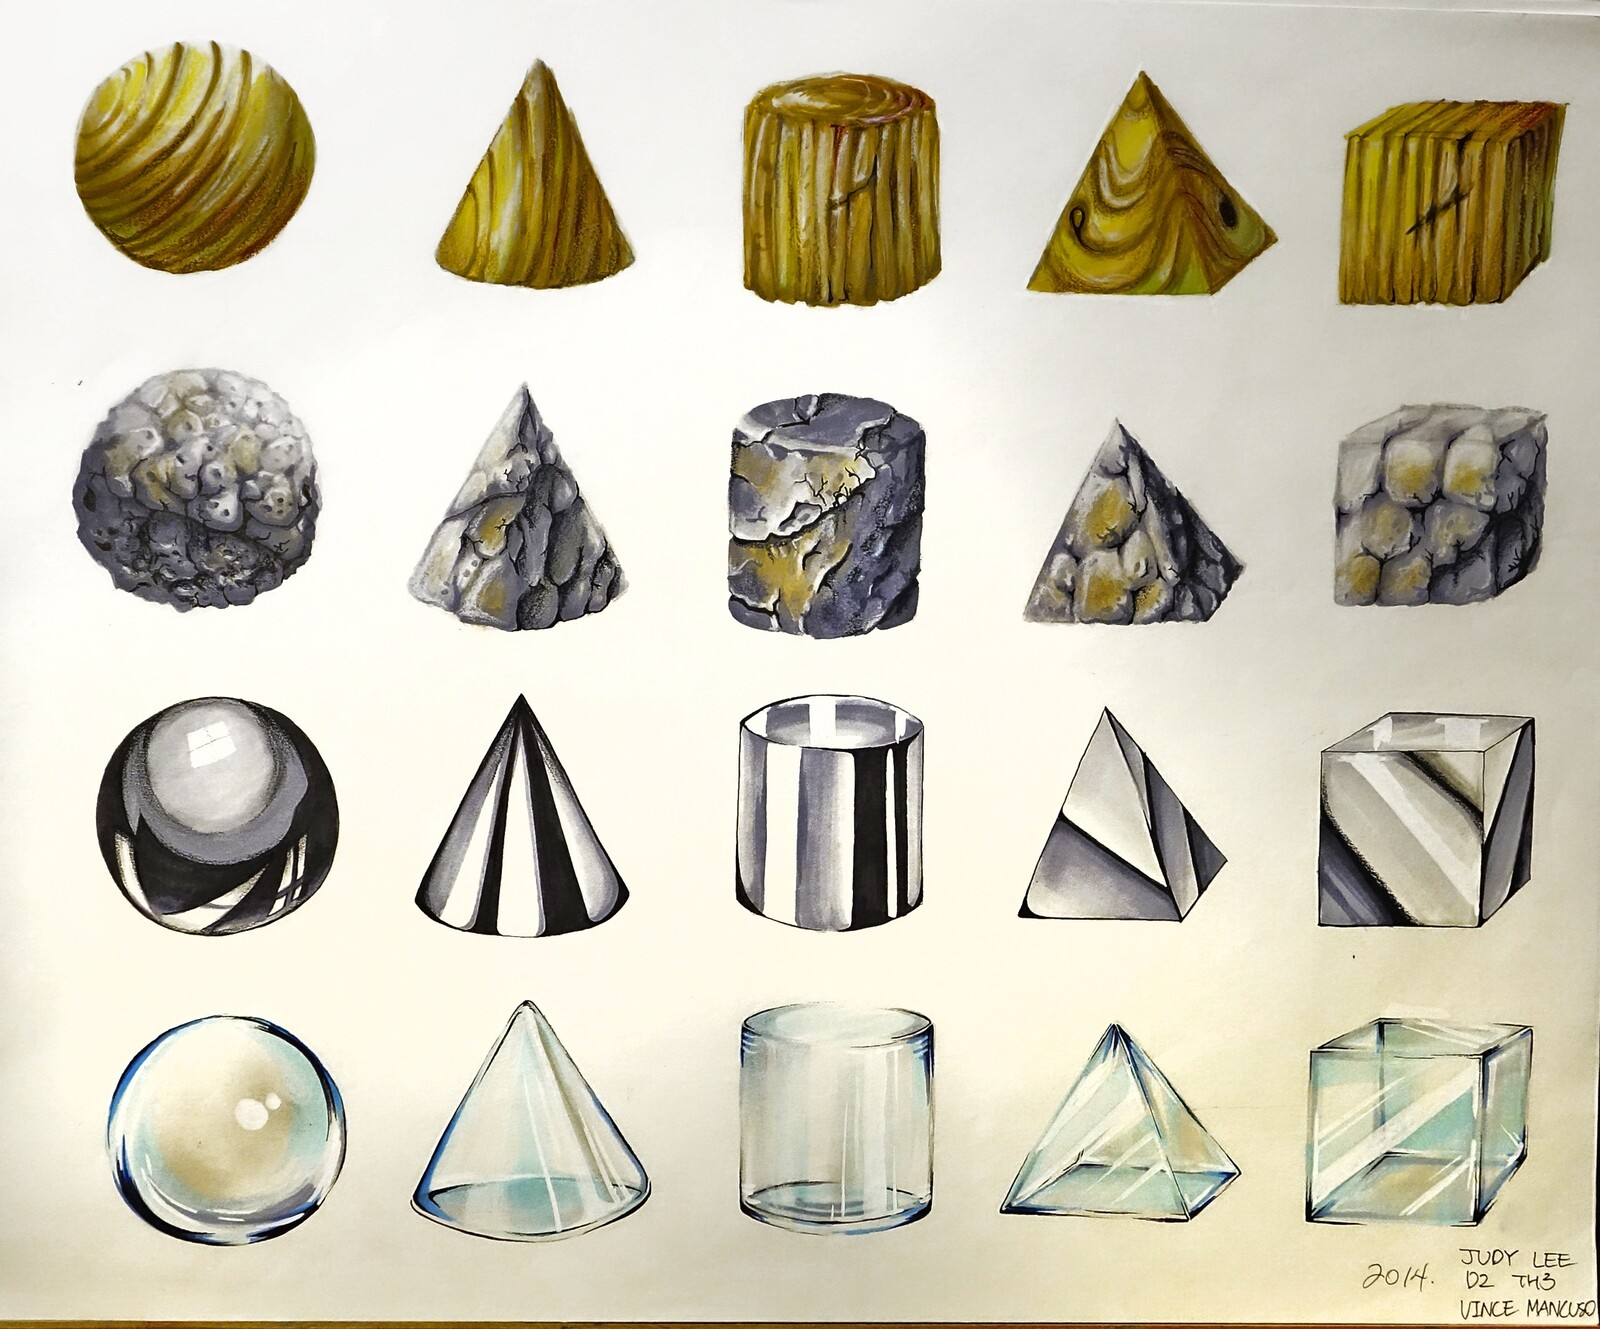 Project 10: All forms in chrome, glass, stone and wood.